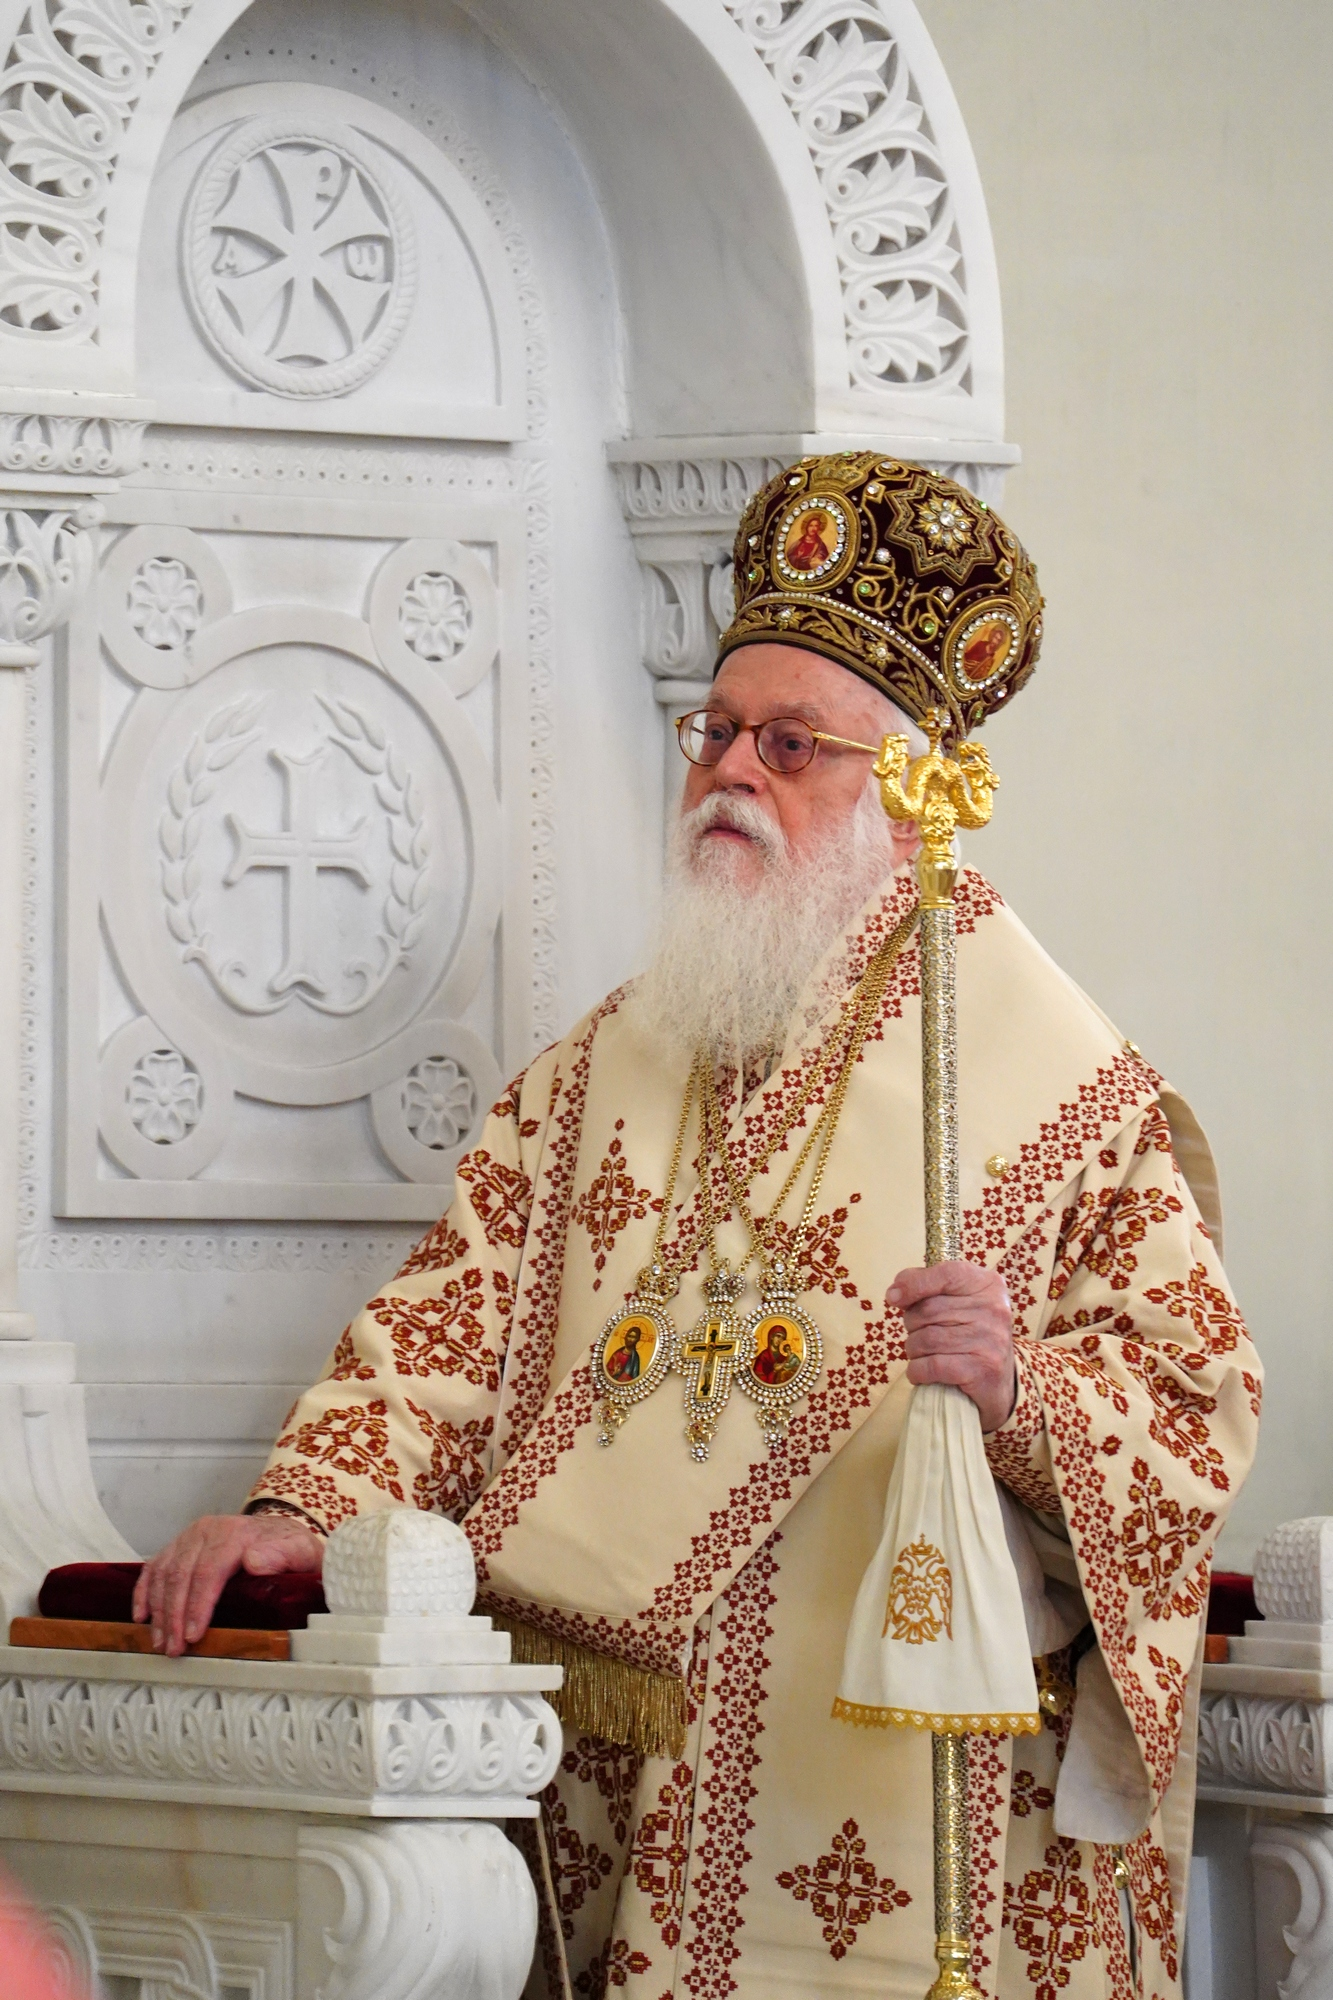 The Divine Liturgy in Ressurestion of Christ Cathedral in Tirana